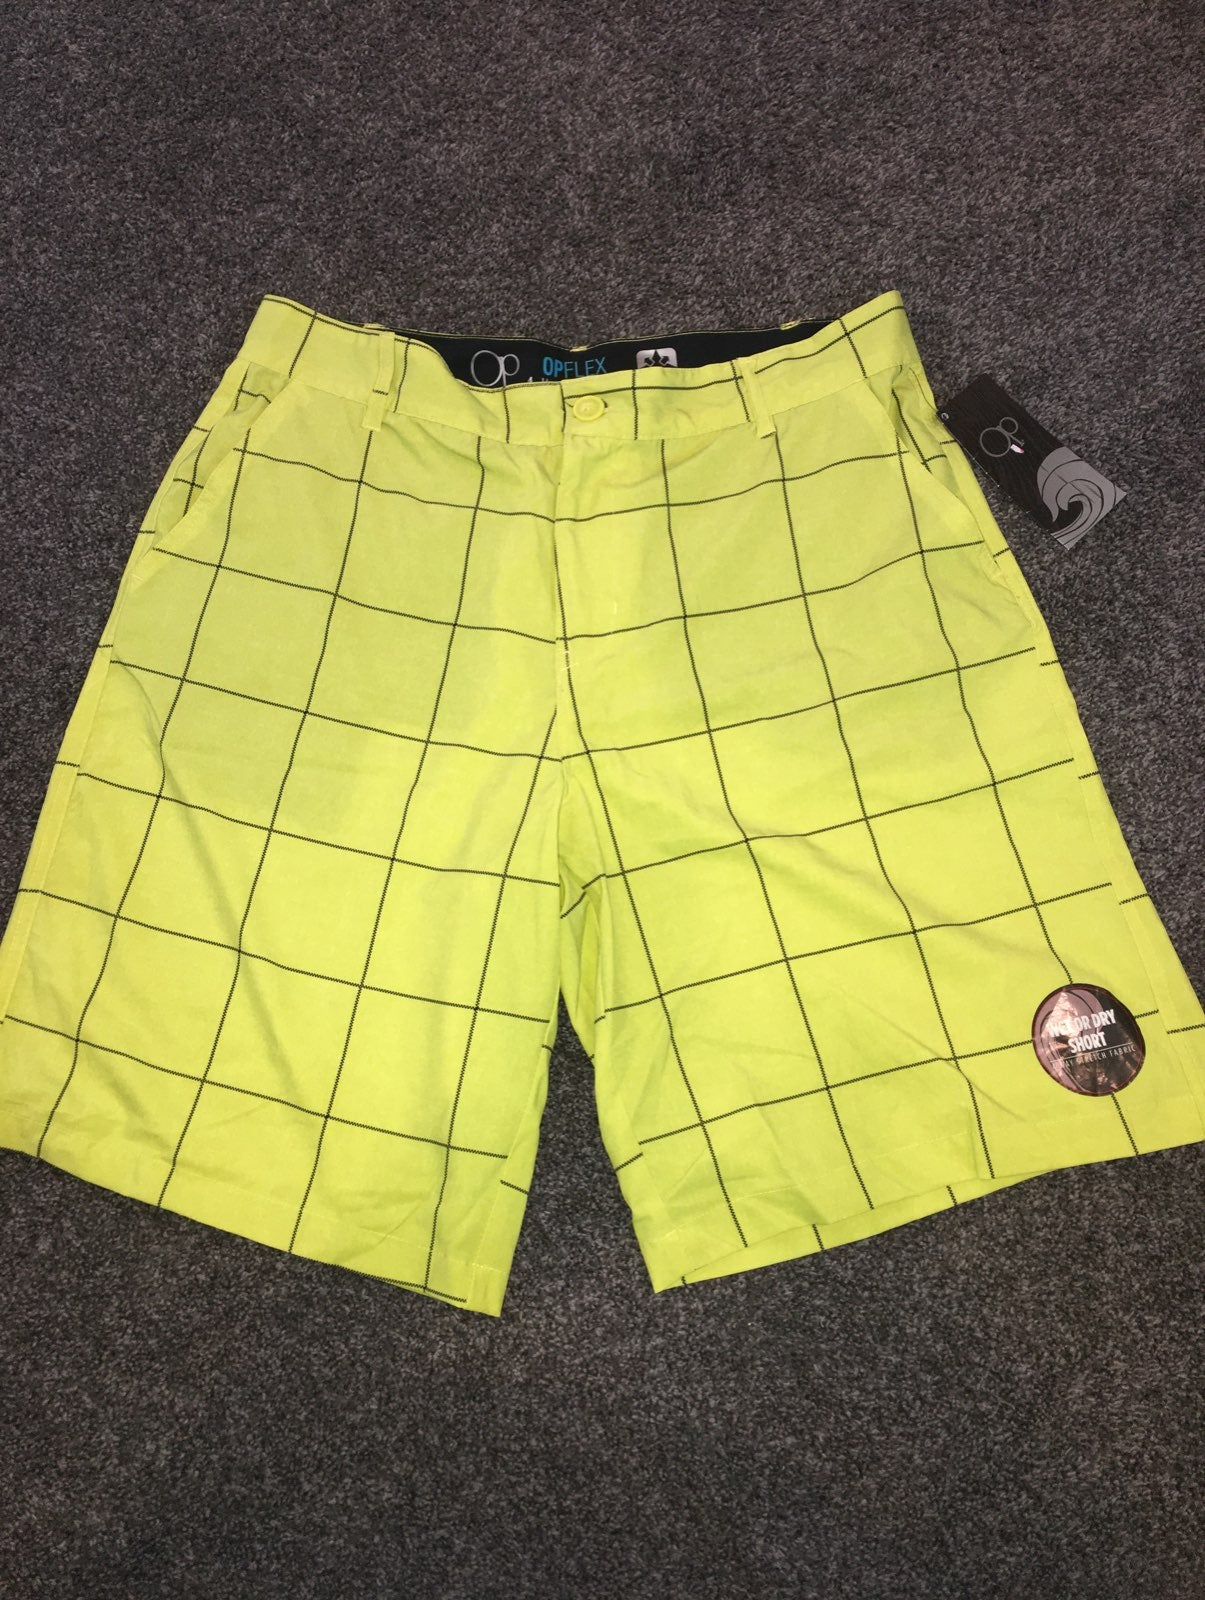 OP shorts for men